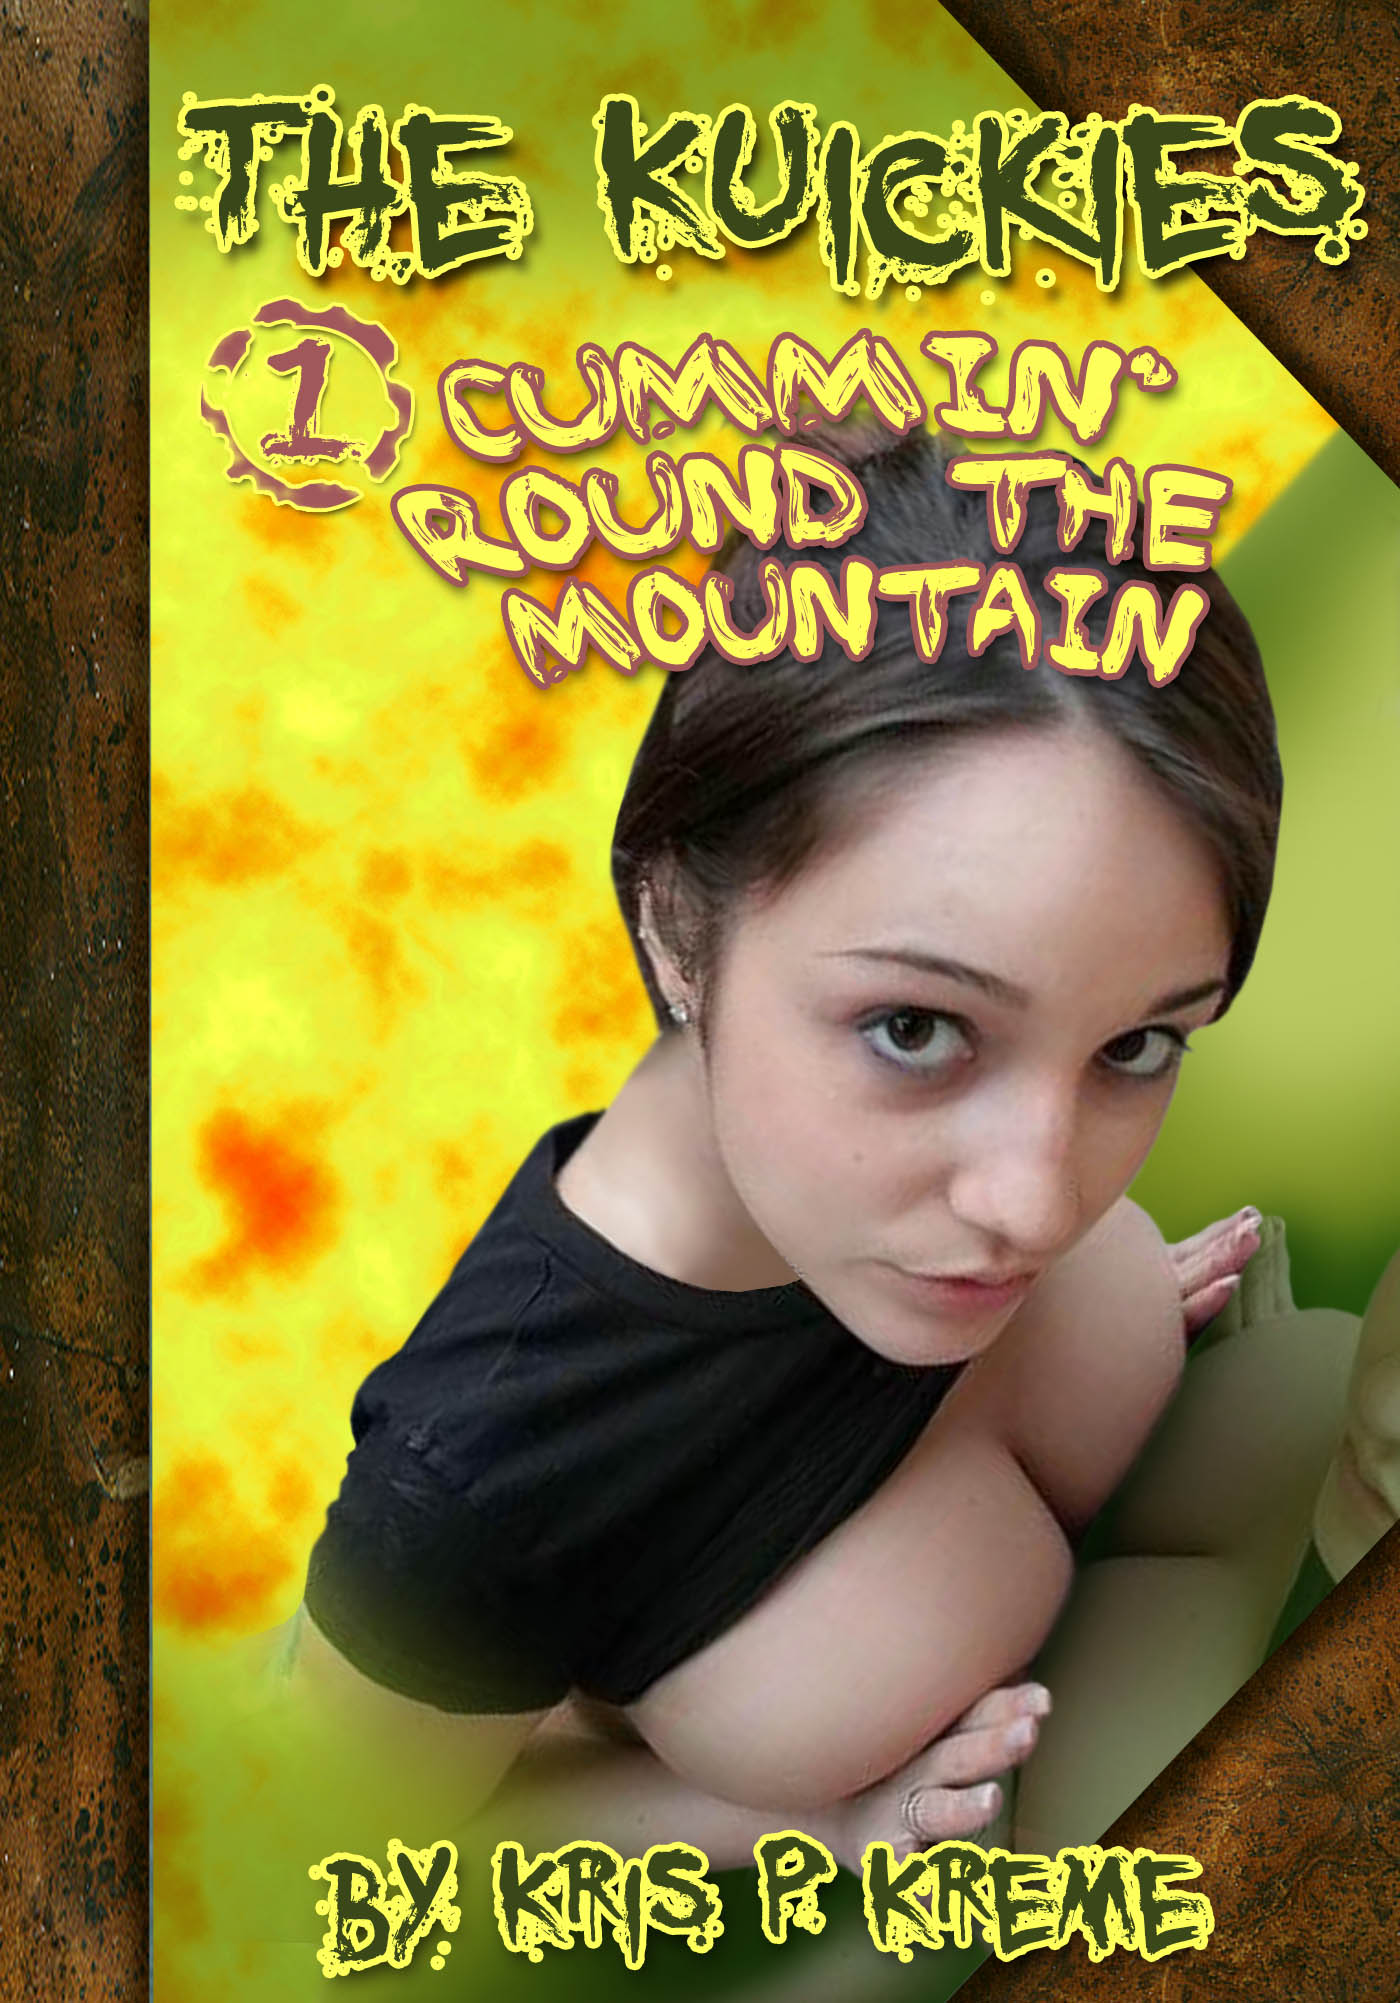 The Kuickies #1 - Cummin' Round the Mountain by Kris P. Kreme